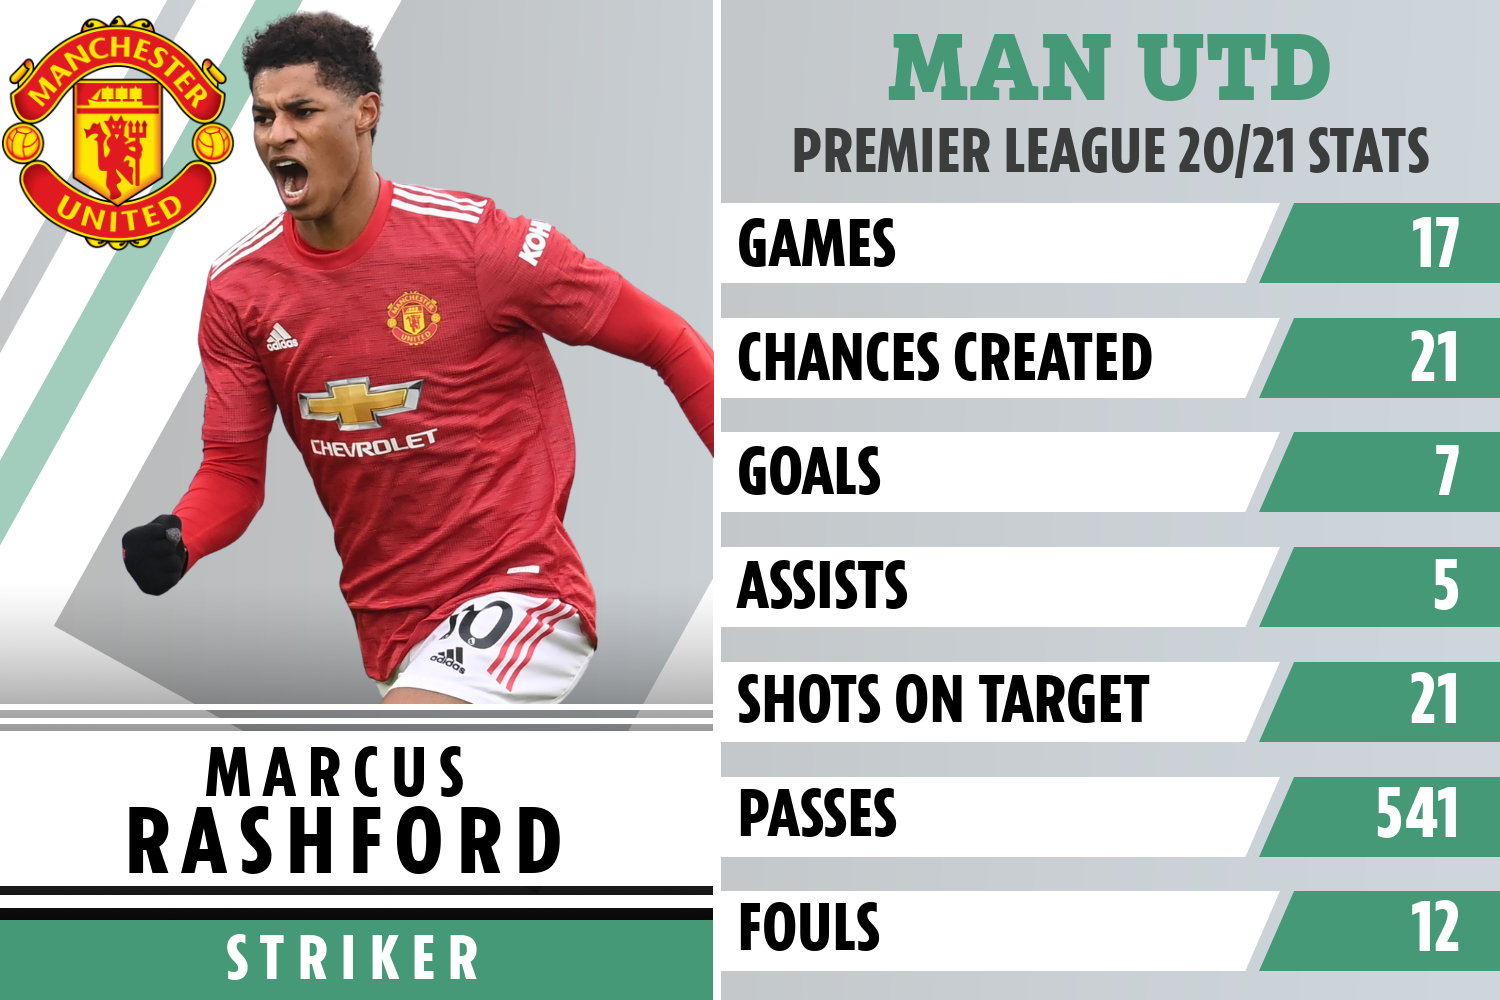 Marcus Rashford adamant Man Utd have to win title or they'll be FAILURES